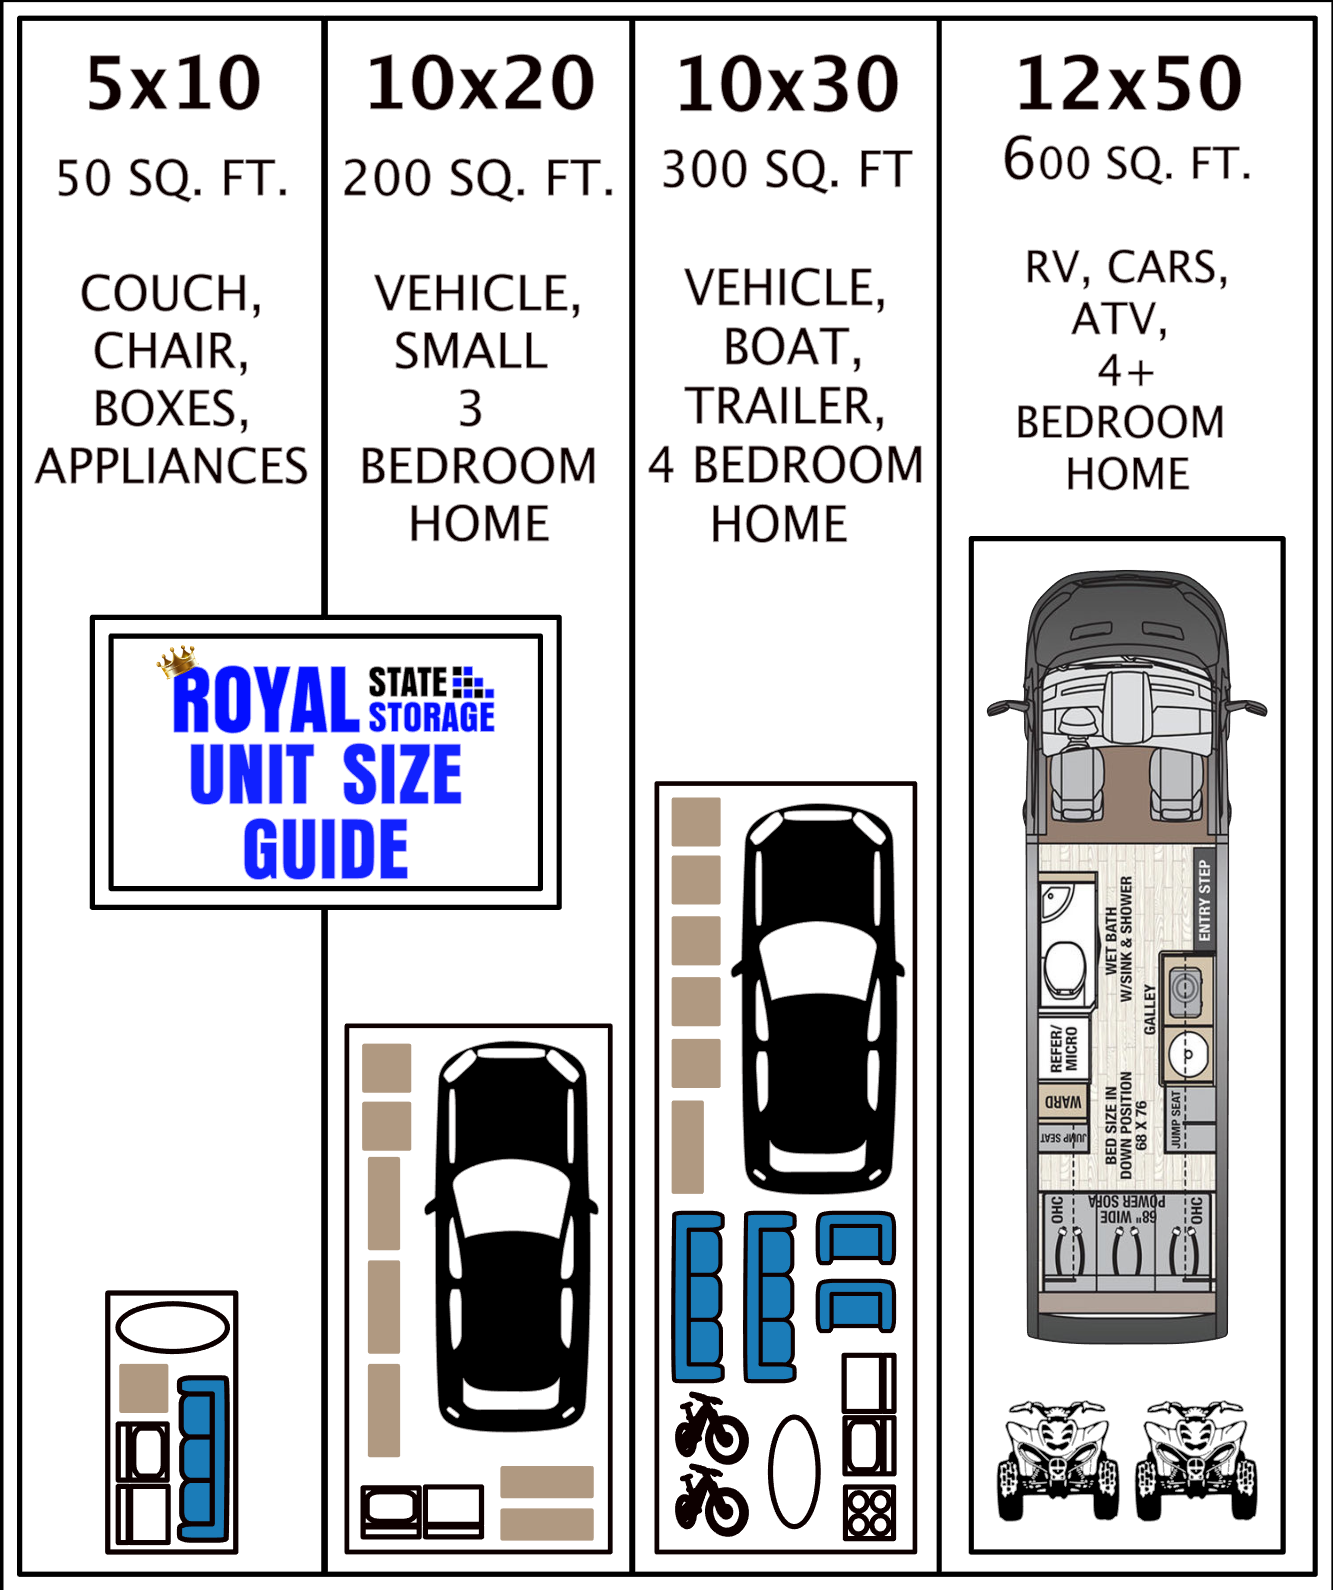 Size guide for storage unit. Shows recommended sizes for 1 through 4+ bedroom homes and offices. Please call us today for more details if you need help selecting the appropriate storage locker size.